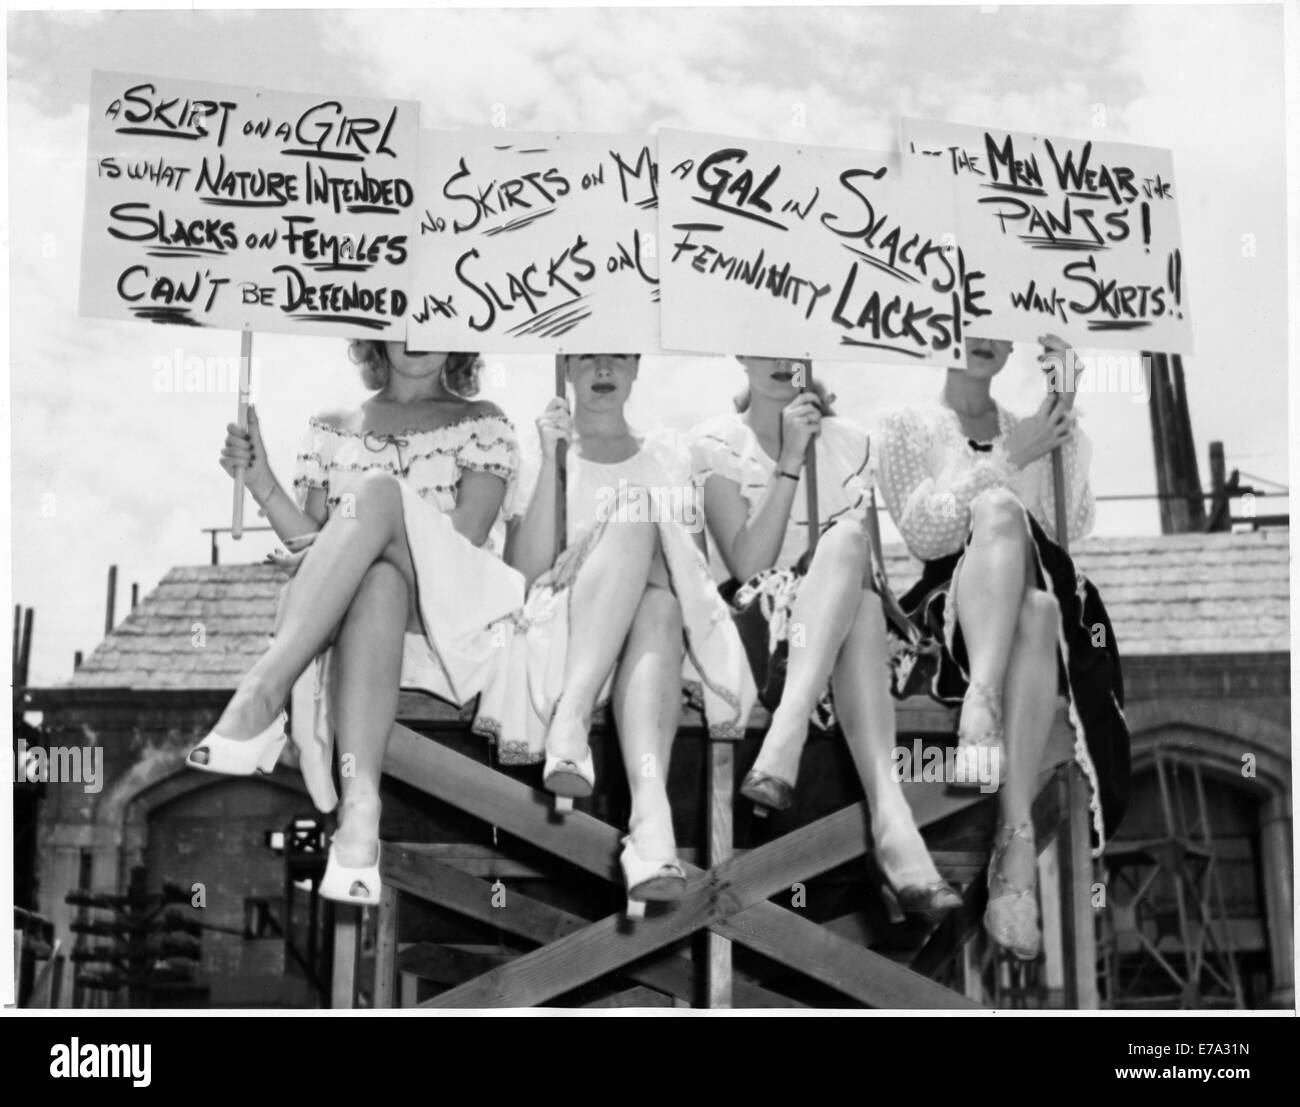 Group of 'Goldwyn Girls' in Skirts Holding Signs in Anti-Slacks Protest for their upcoming Film, 'The - Stock Image